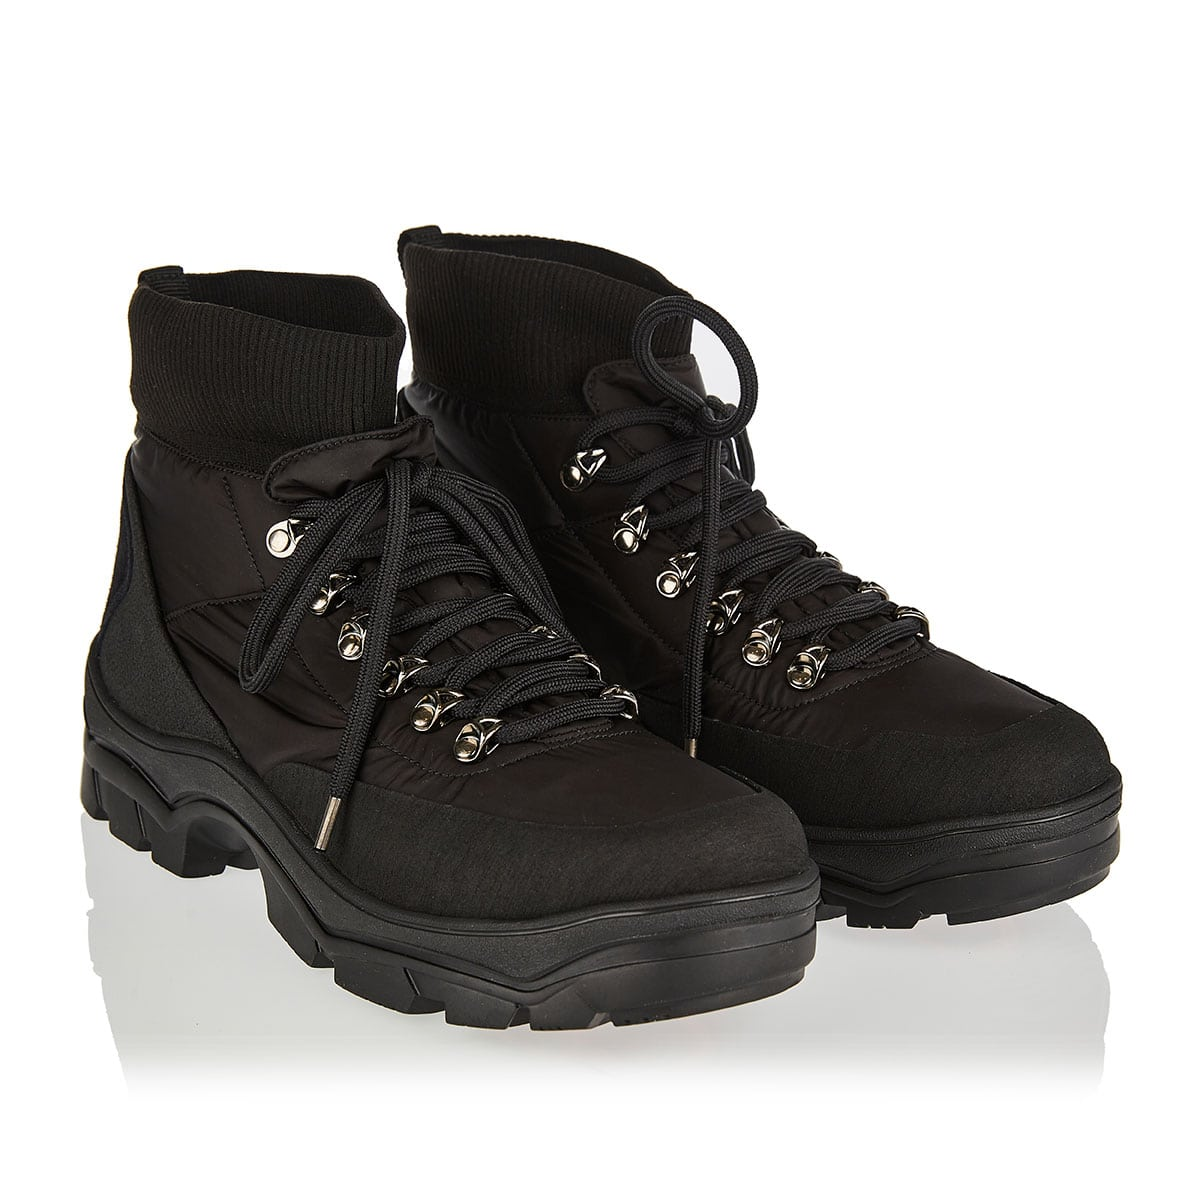 Clement hiking boots